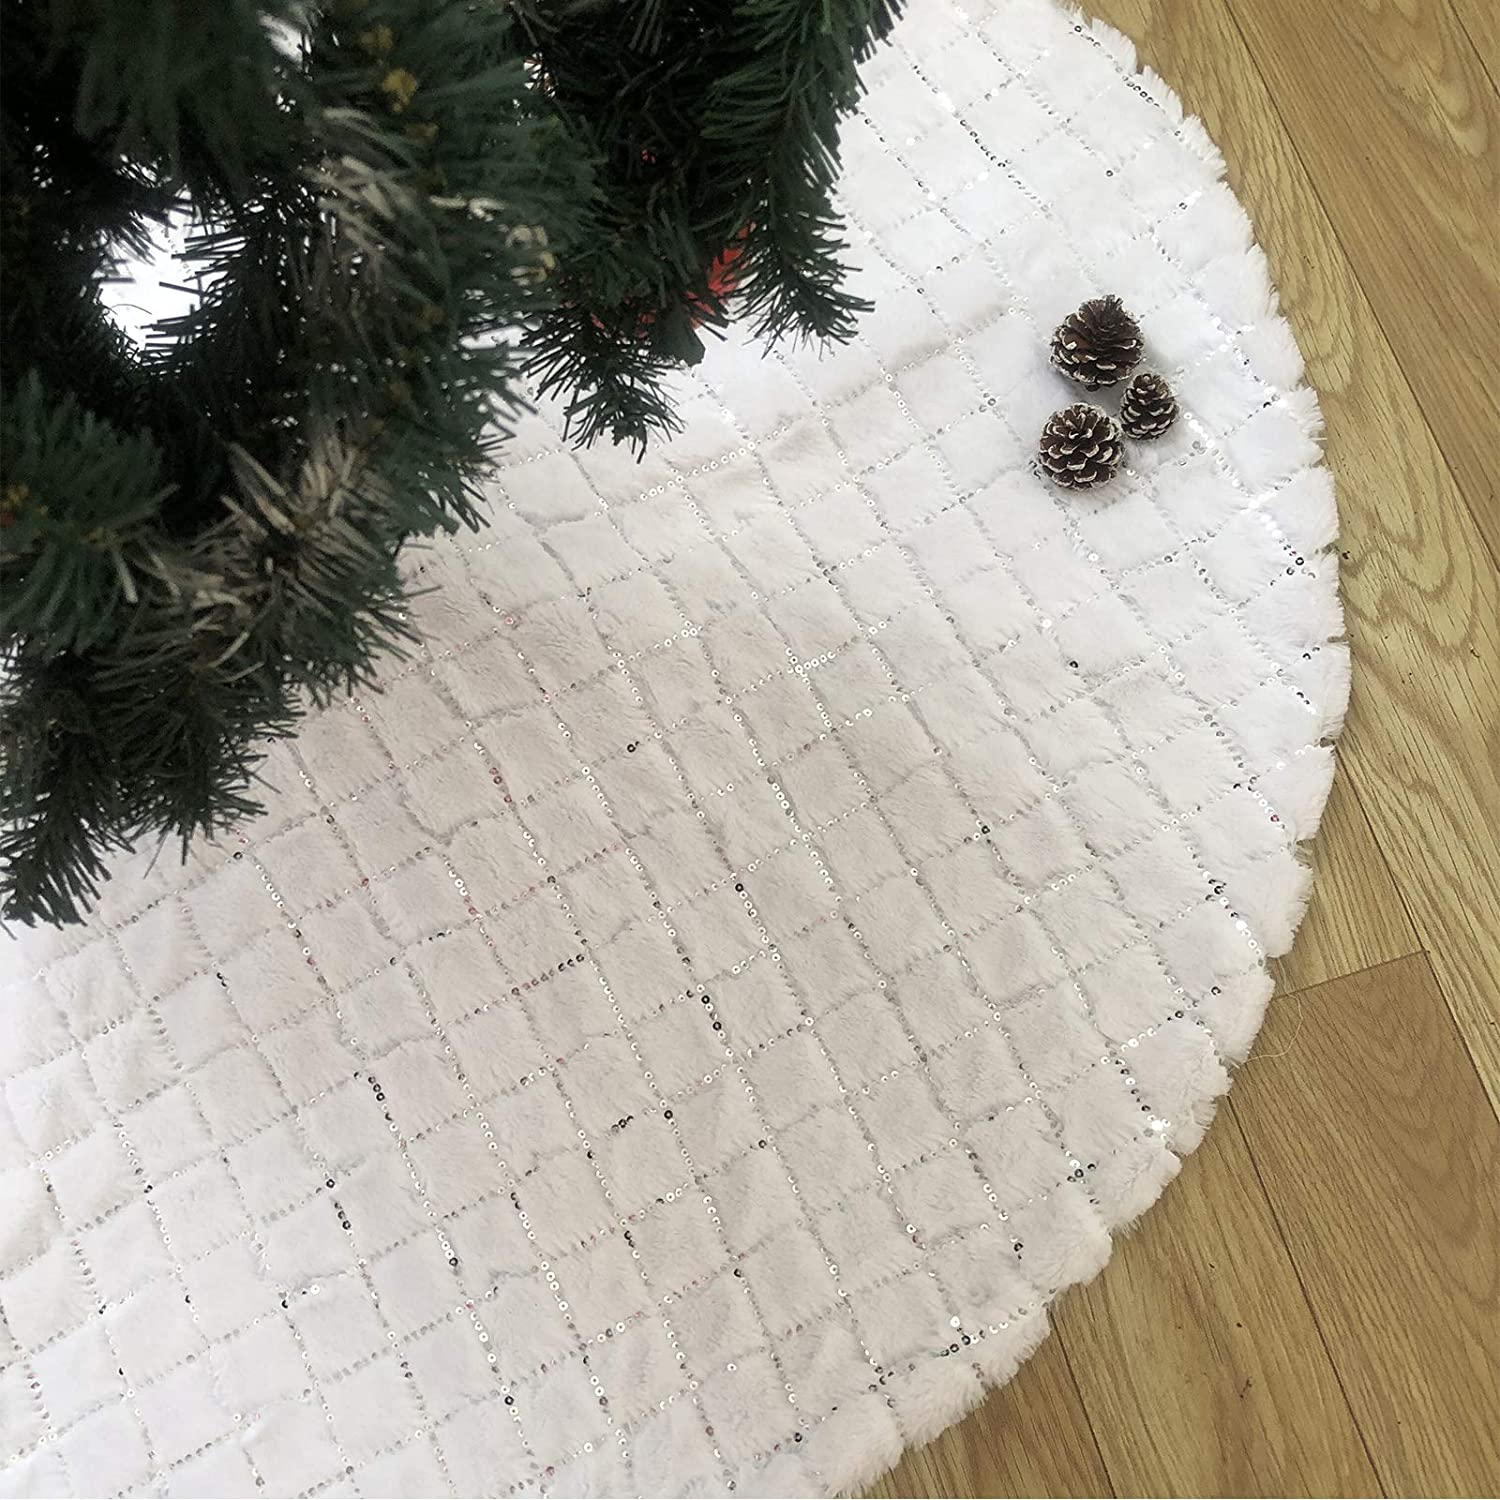 DegGod Pure White Christmas Tree Skirts with Sequin, 48 inches Plush Xmas Tree Skirt Mat with Faux Fur Trim Border for Thanksgiving Holiday Home Party Decorations Ornaments (Sequin, 48 inches)